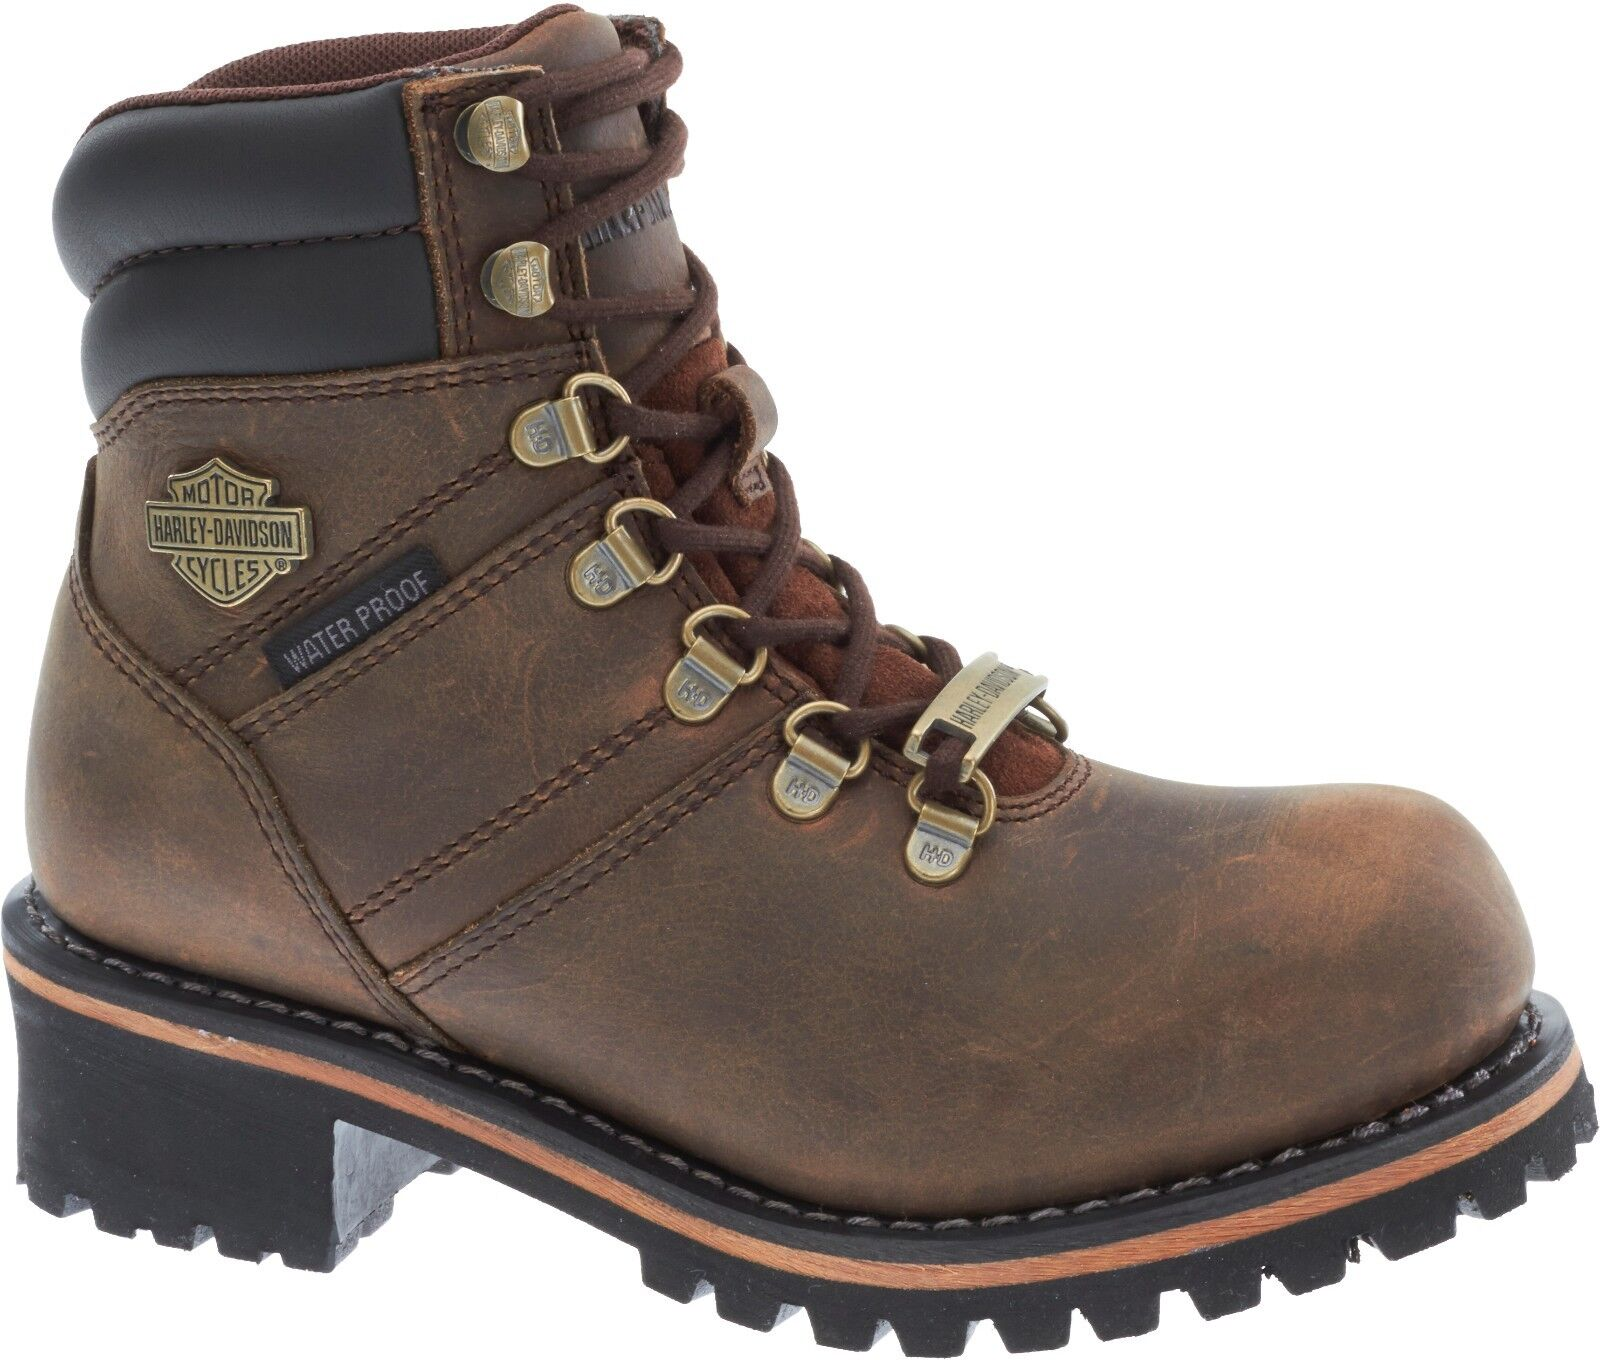 Harley-Davidson Harley-Davidson Harley-Davidson Women's Ladson Waterproof Brown Leather Motorcycle Boot D87104 f4fc6b